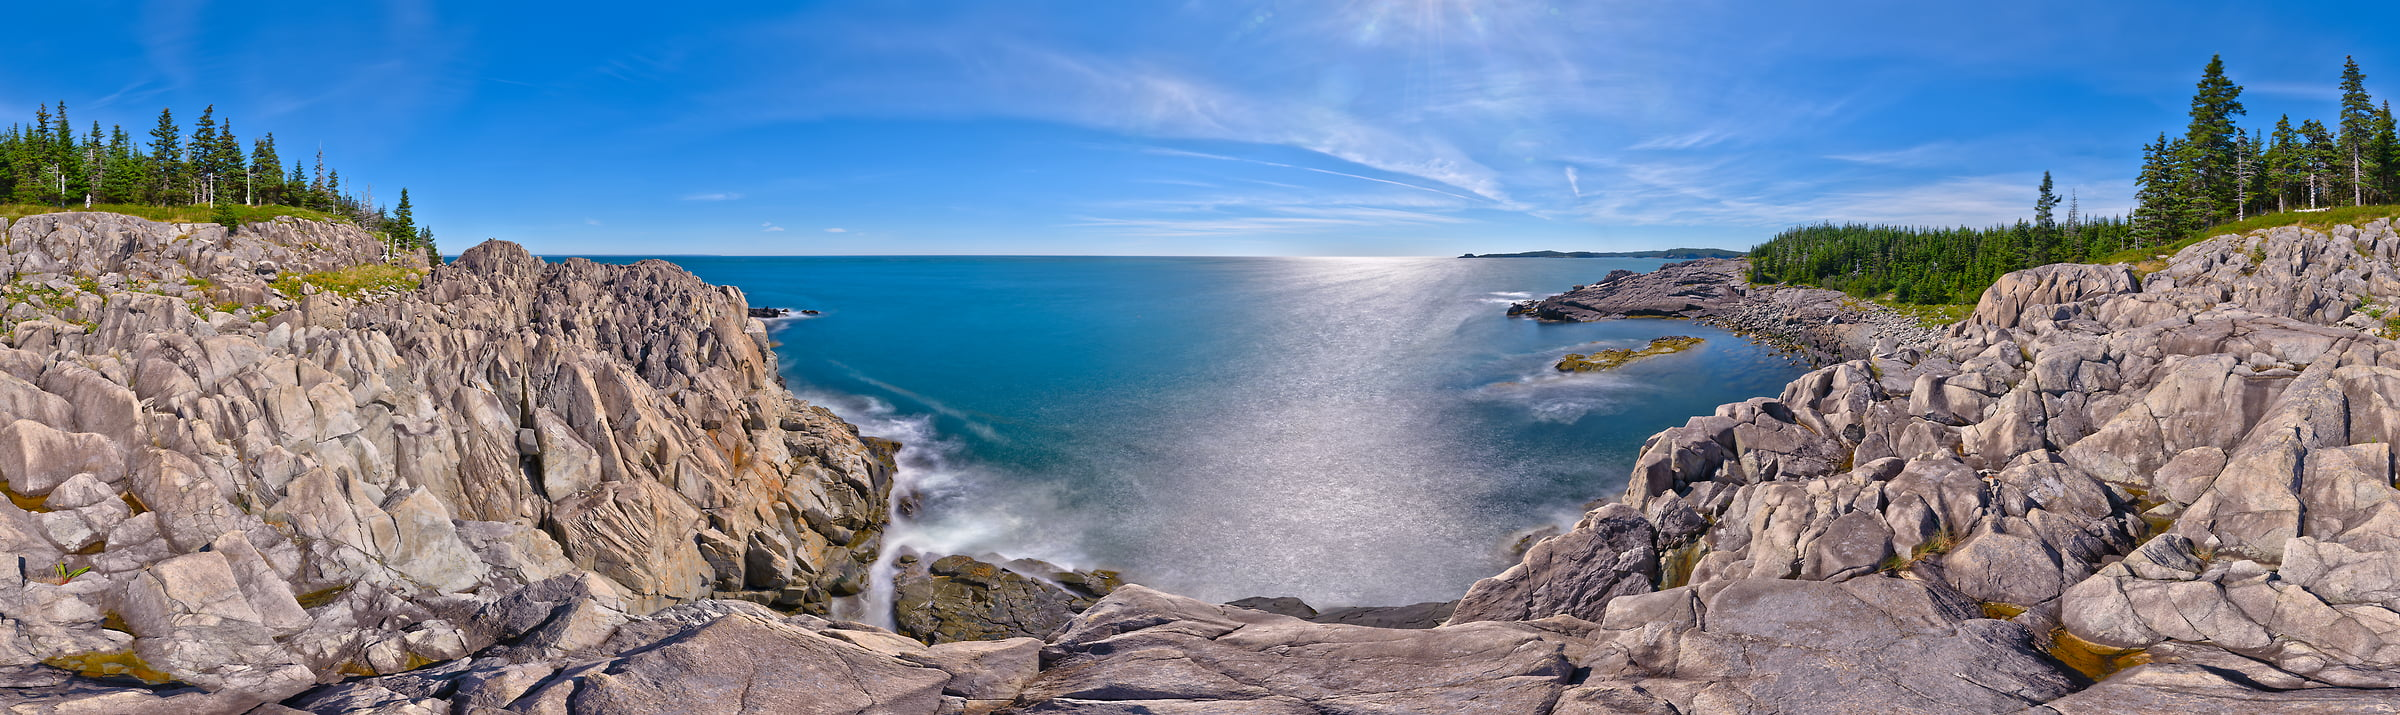 433 megapixels! A very high resolution, large-format VAST photo of the Bold Coast of Maine in New England; fine art landscape panorama photograph created by Aaron Priest in Cutler, Maine